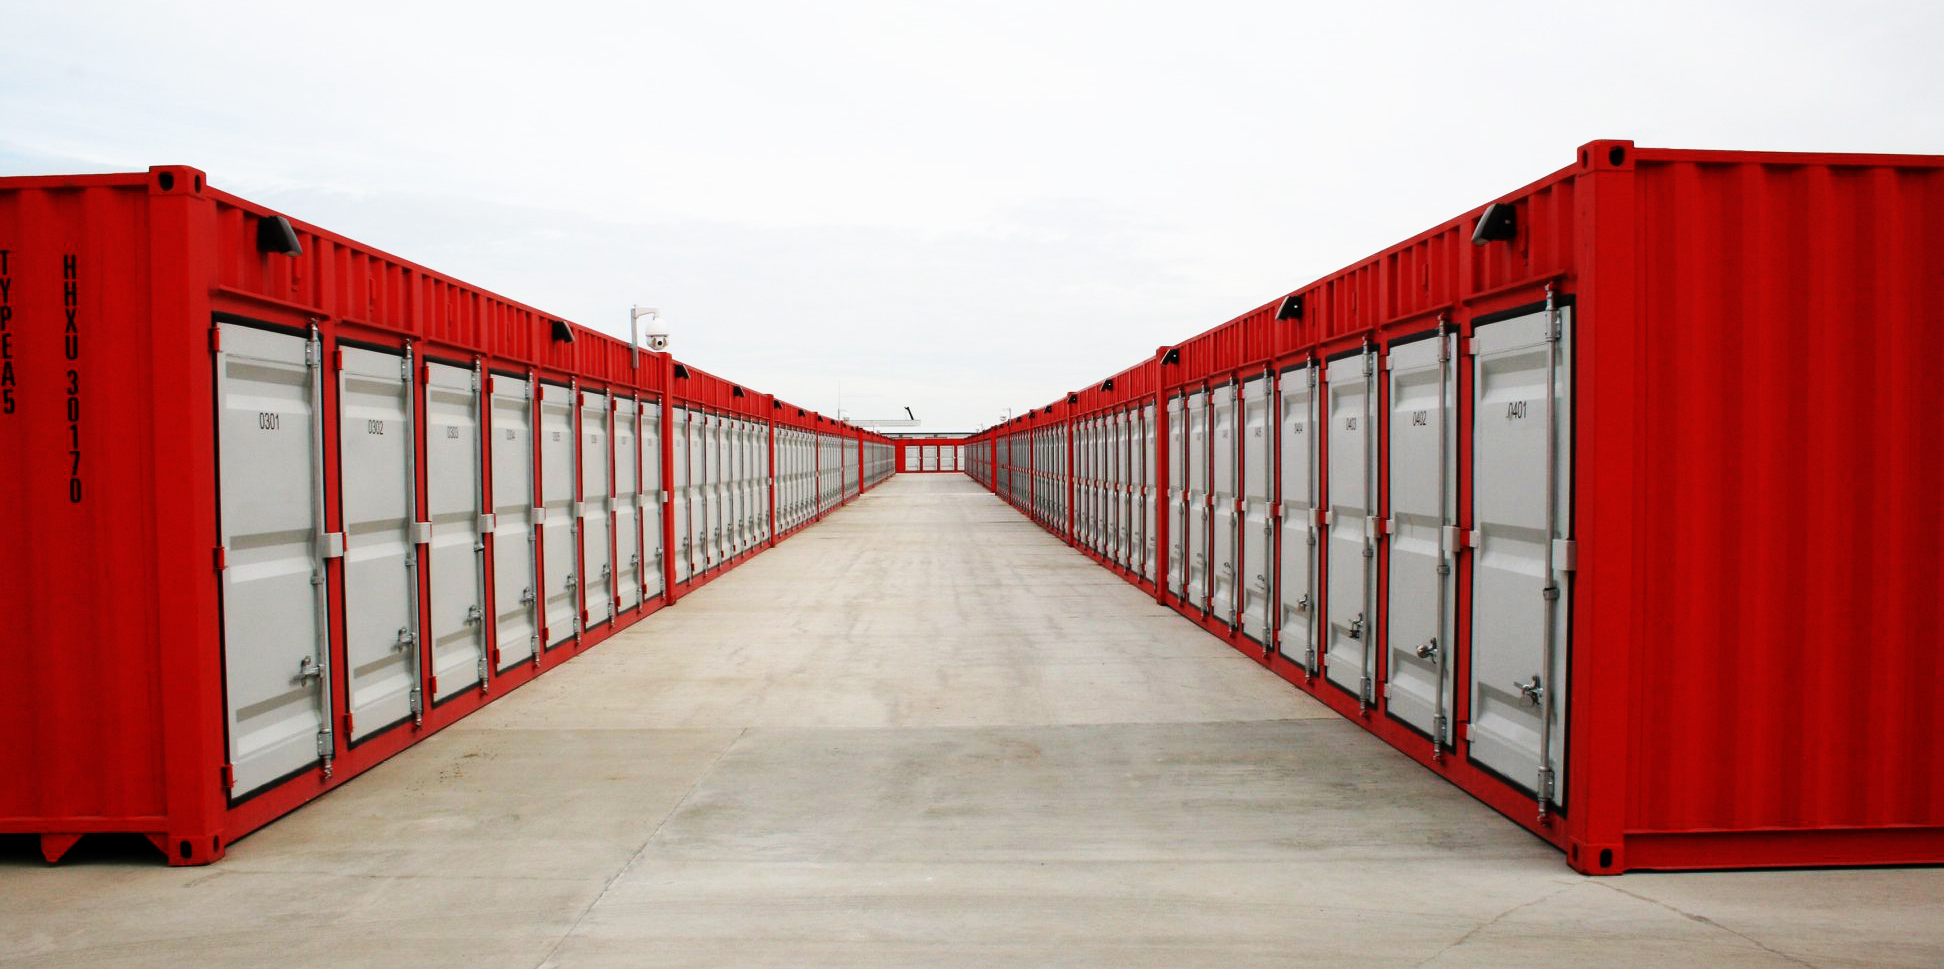 Feel free to look at our Morinville storage units and give us a call if you have any questions or rent your unit right on the website.